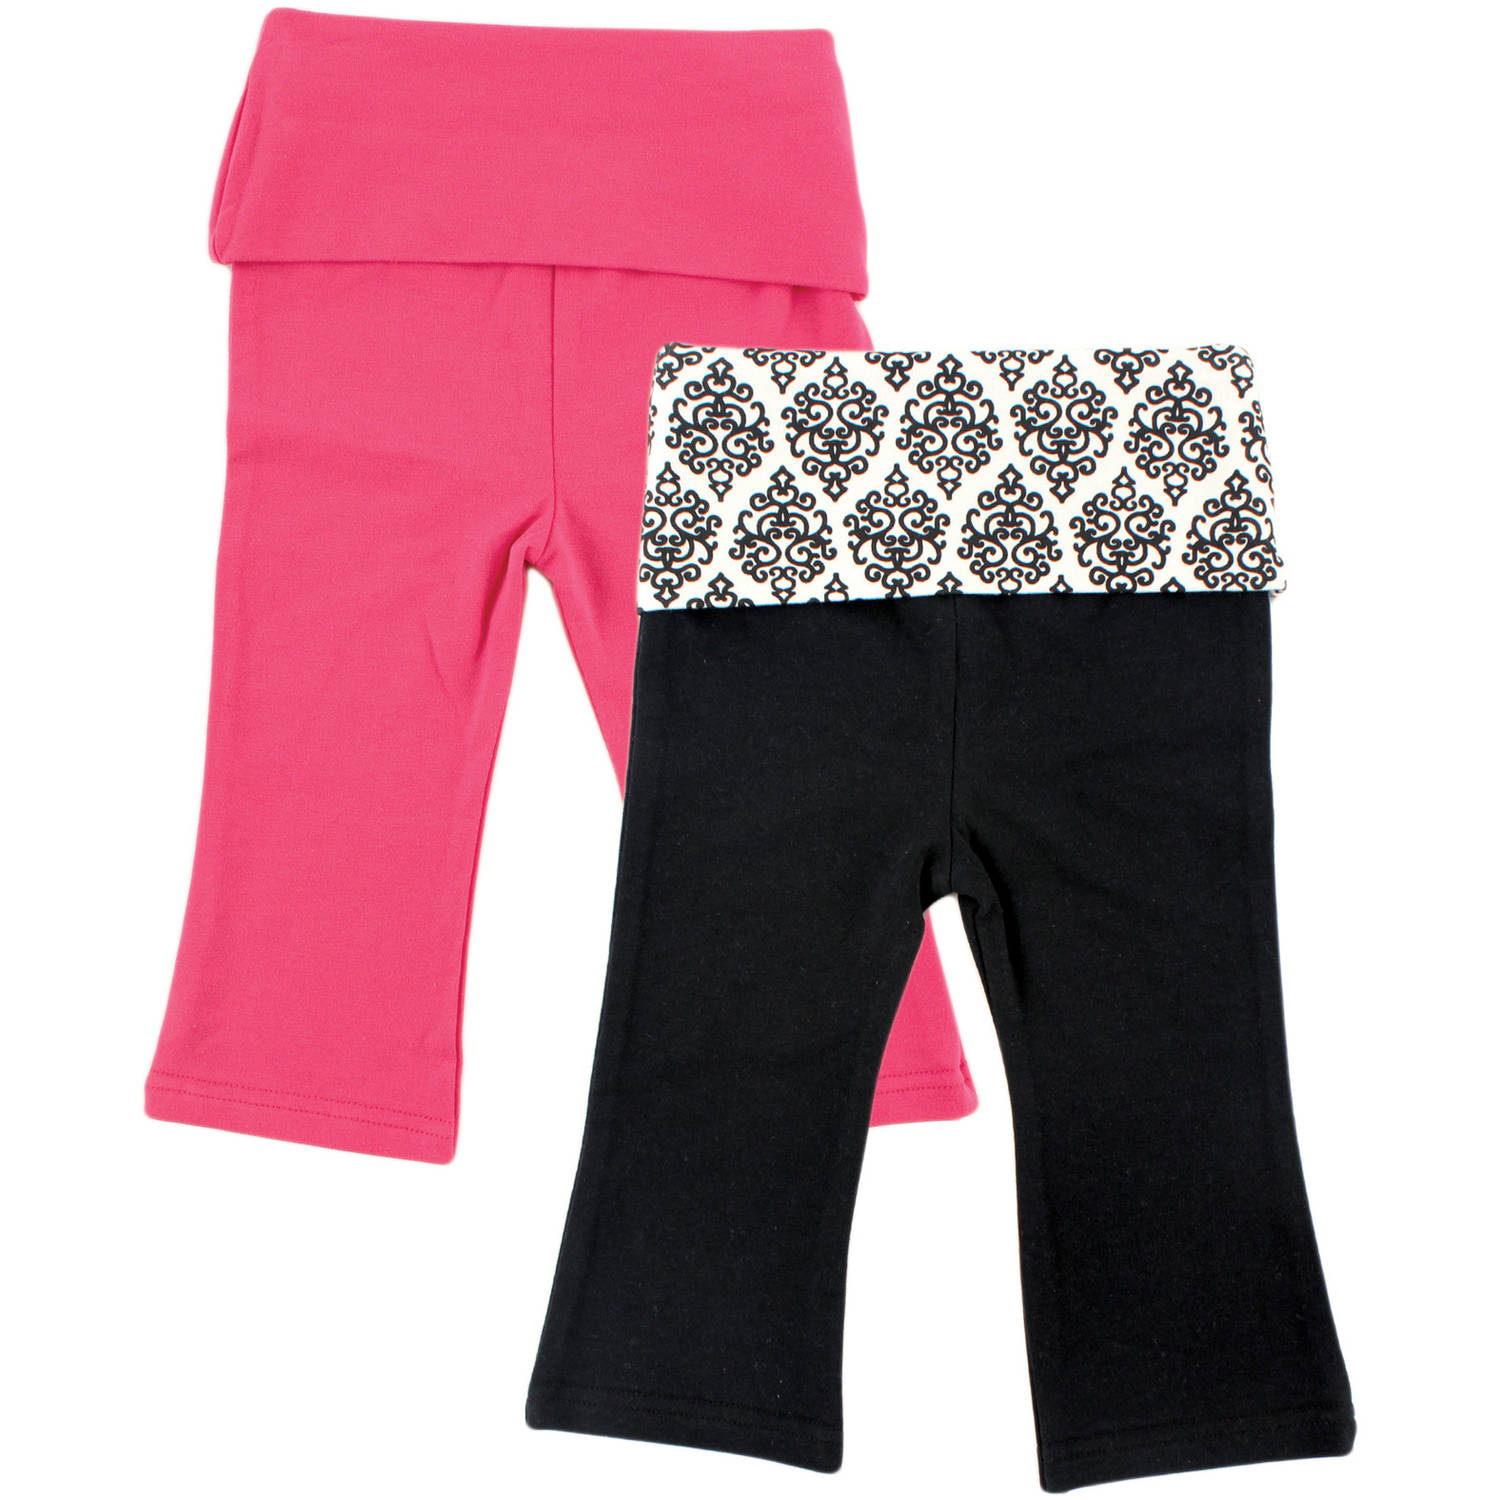 Yoga Sprout Newborn Baby Girls 2 Pack Yoga Pant - Damask